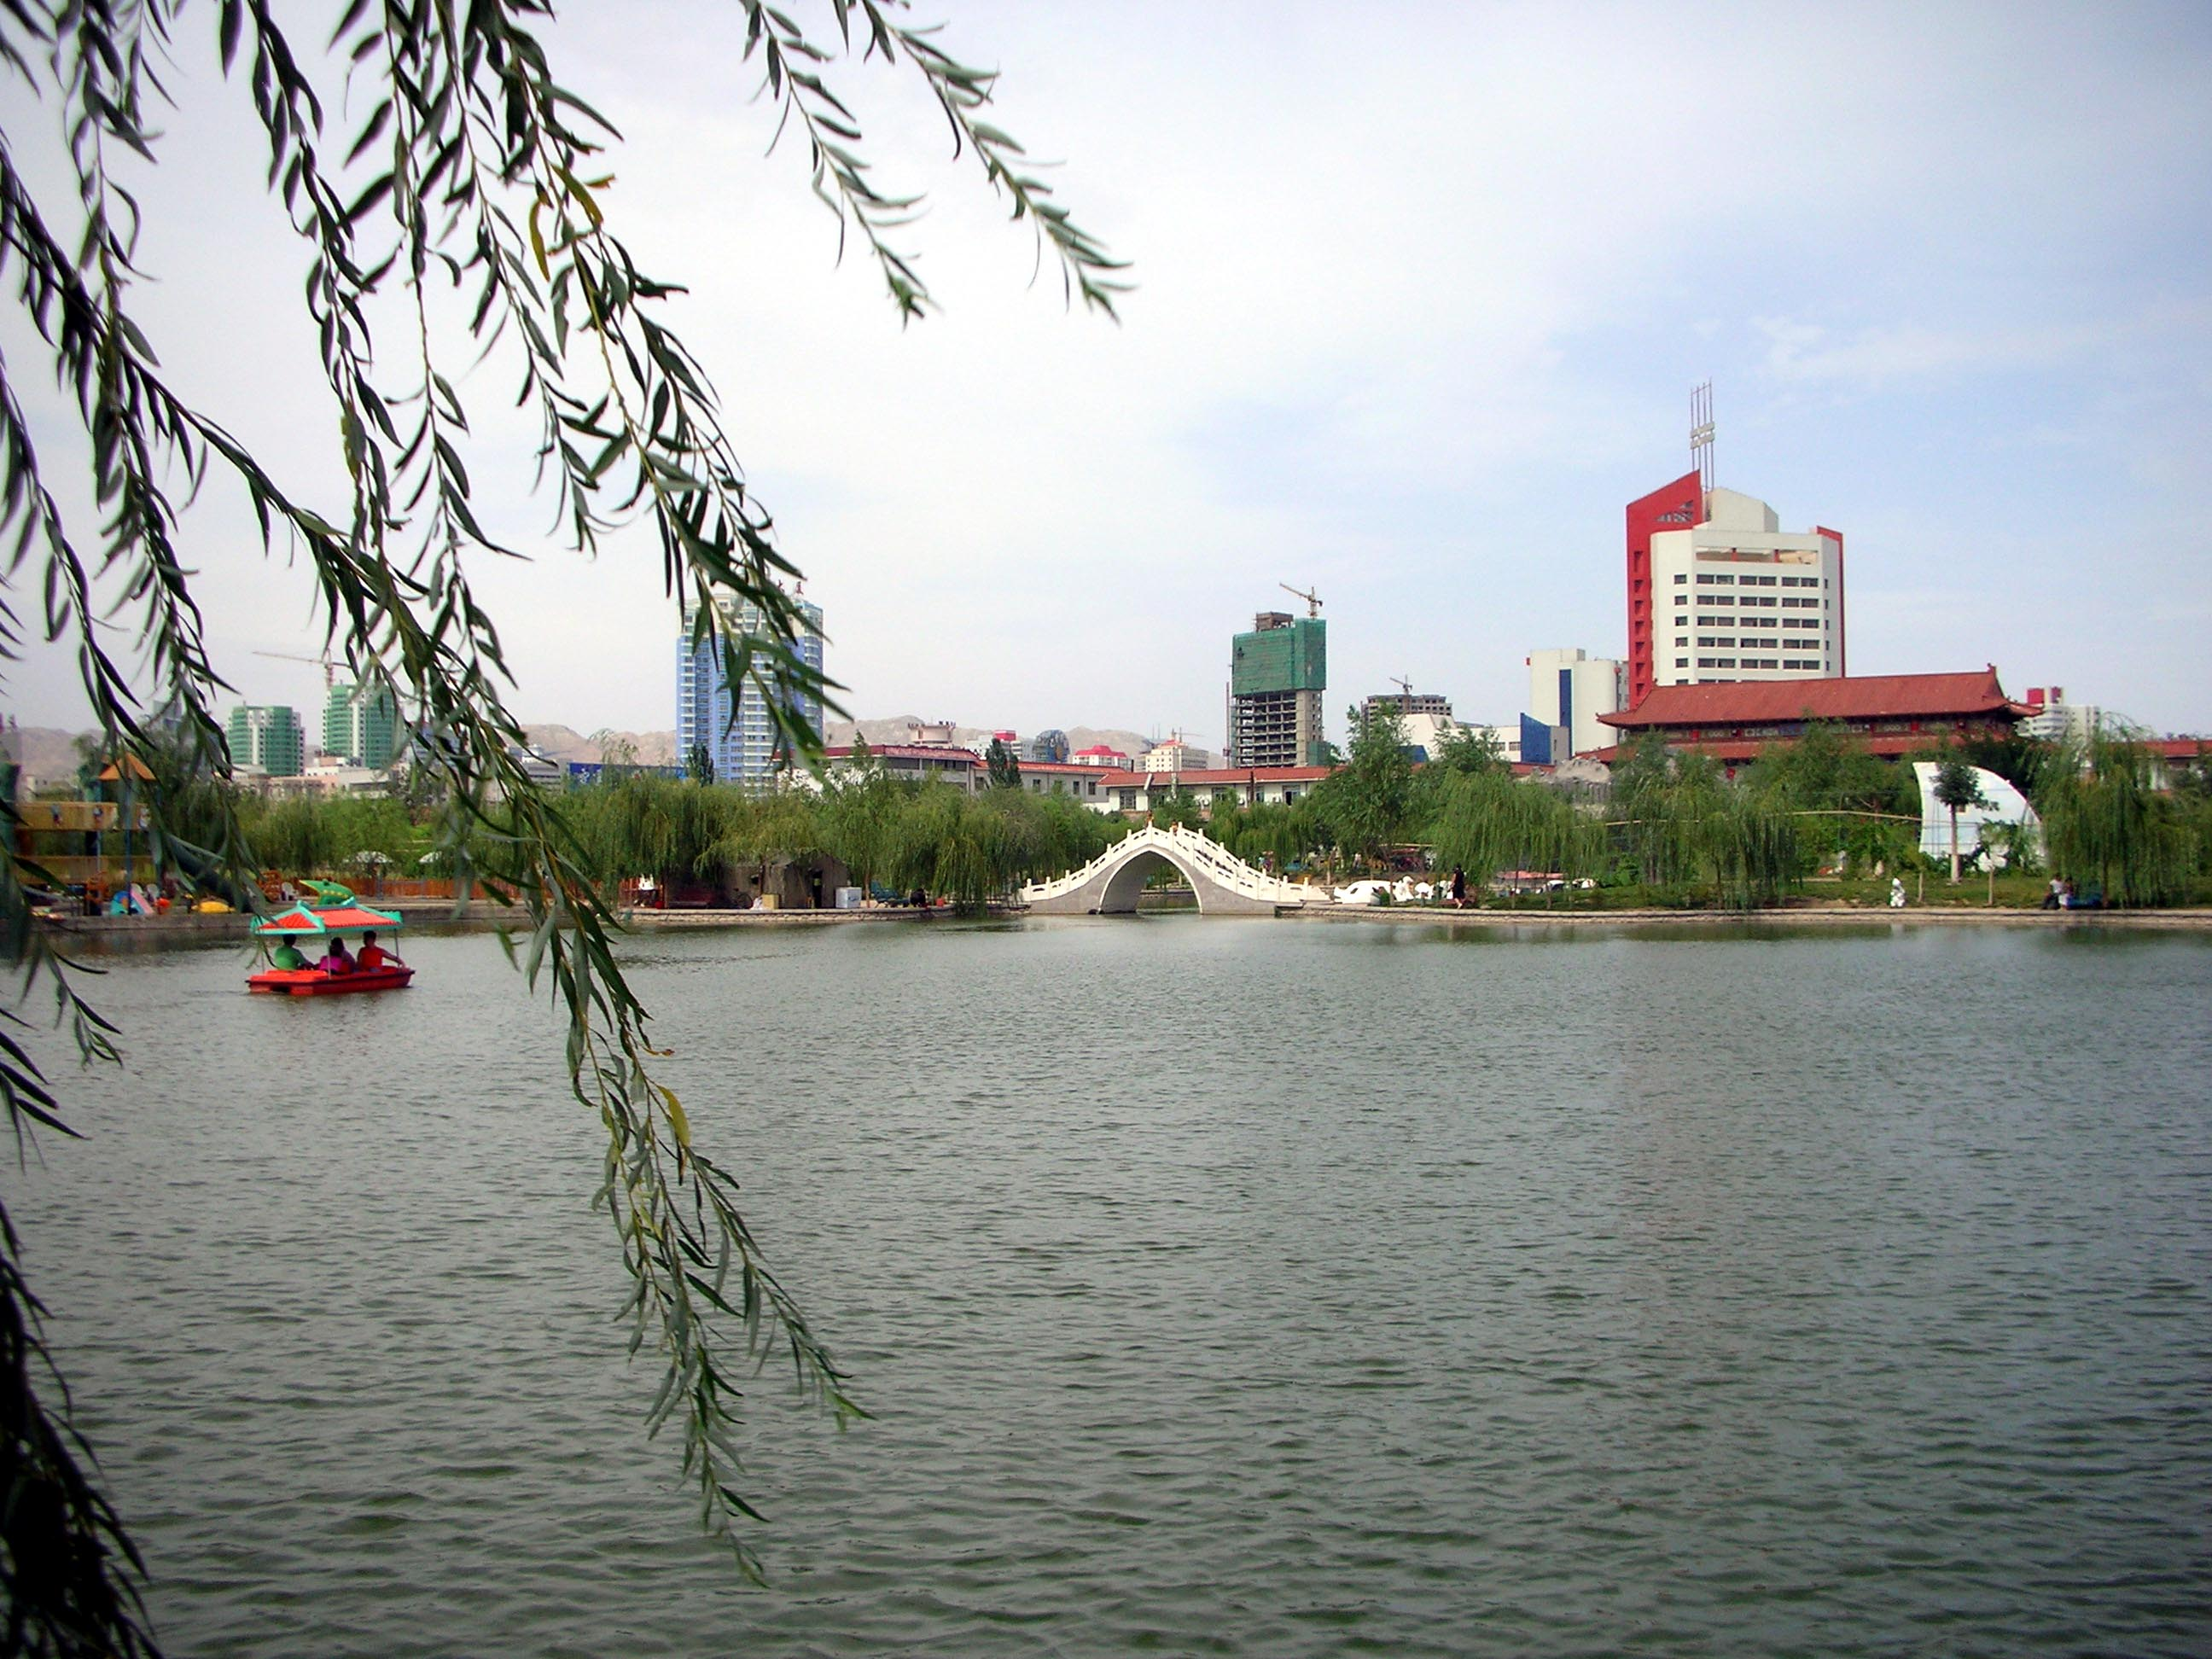 Looking towards the city center from the lake in Peacock Park.